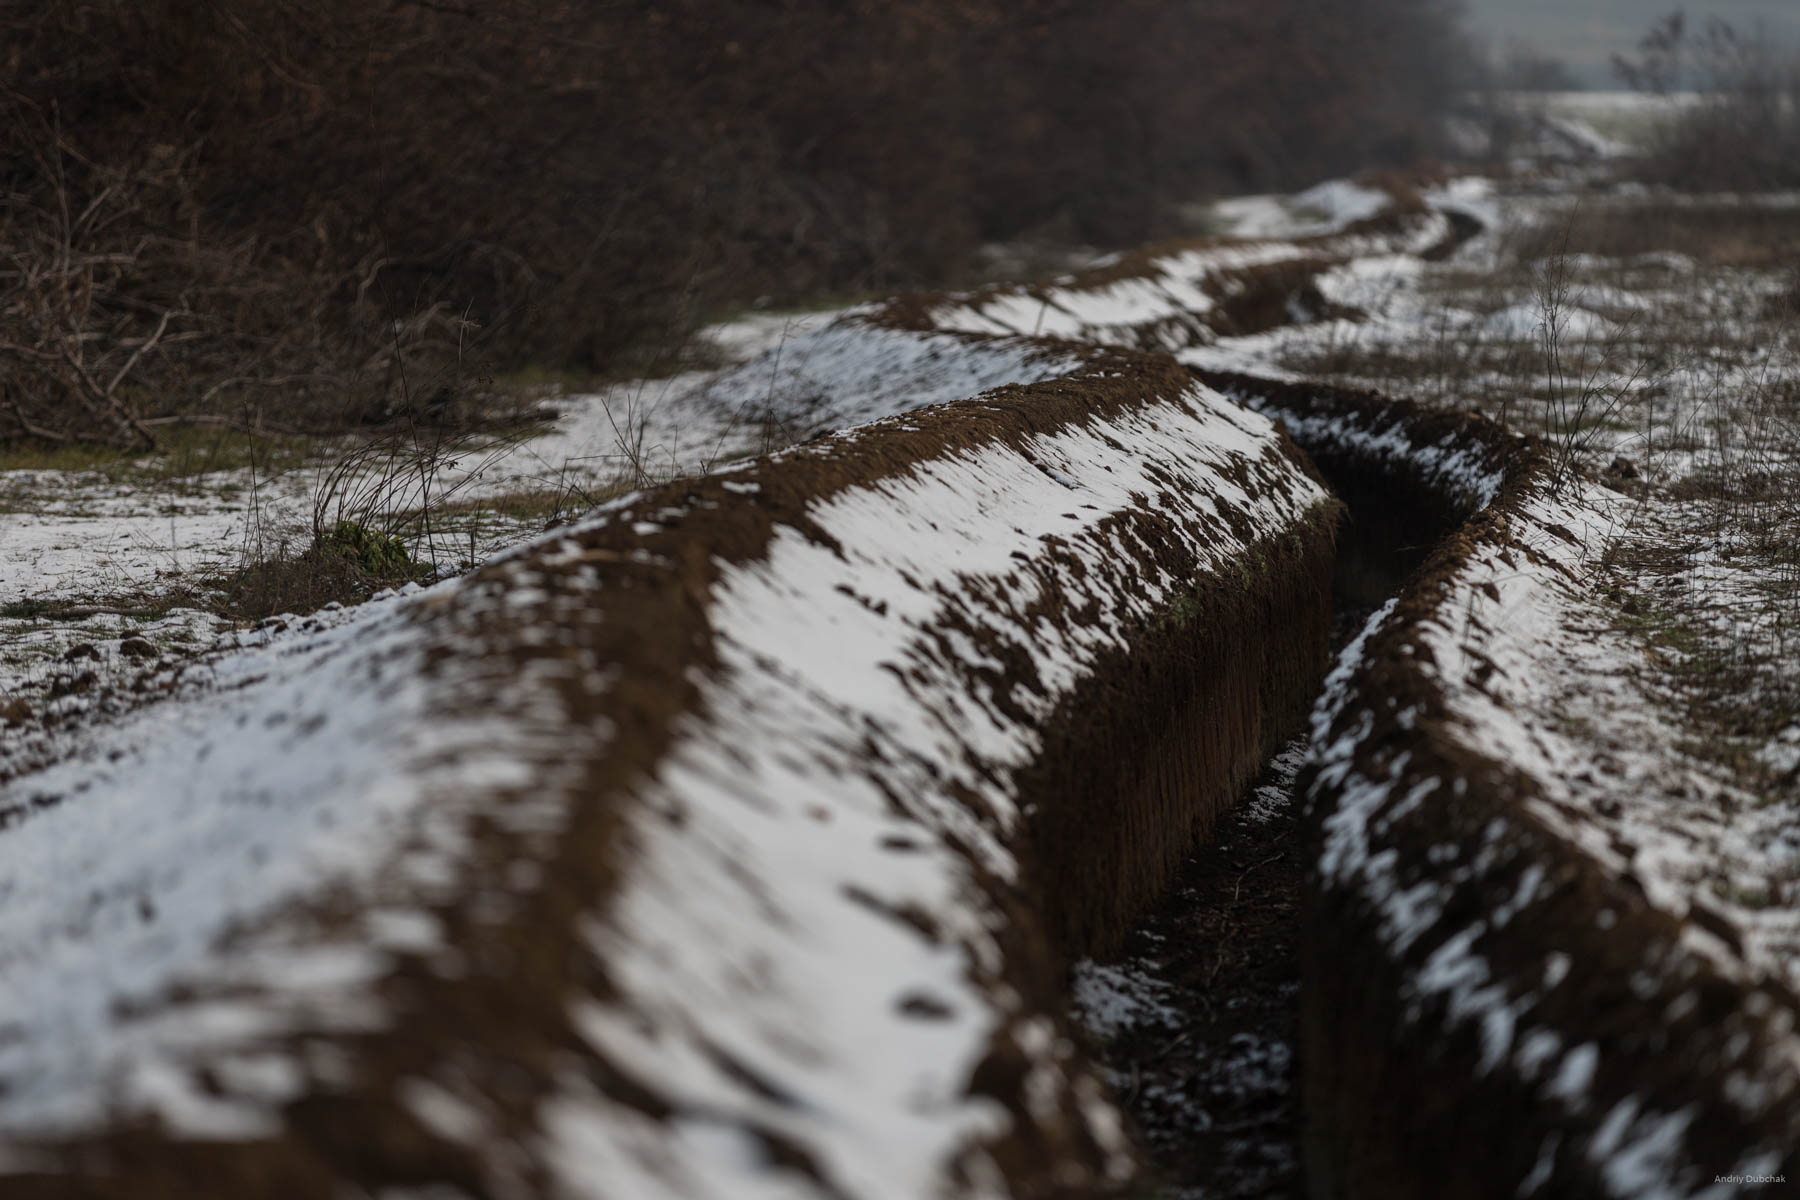 Trench lines of Ukrainian military positions, near Popasna. Where possible, such trench lines connect forward PS (platoon strongpoints)  District of Popasnoy, December 2017.